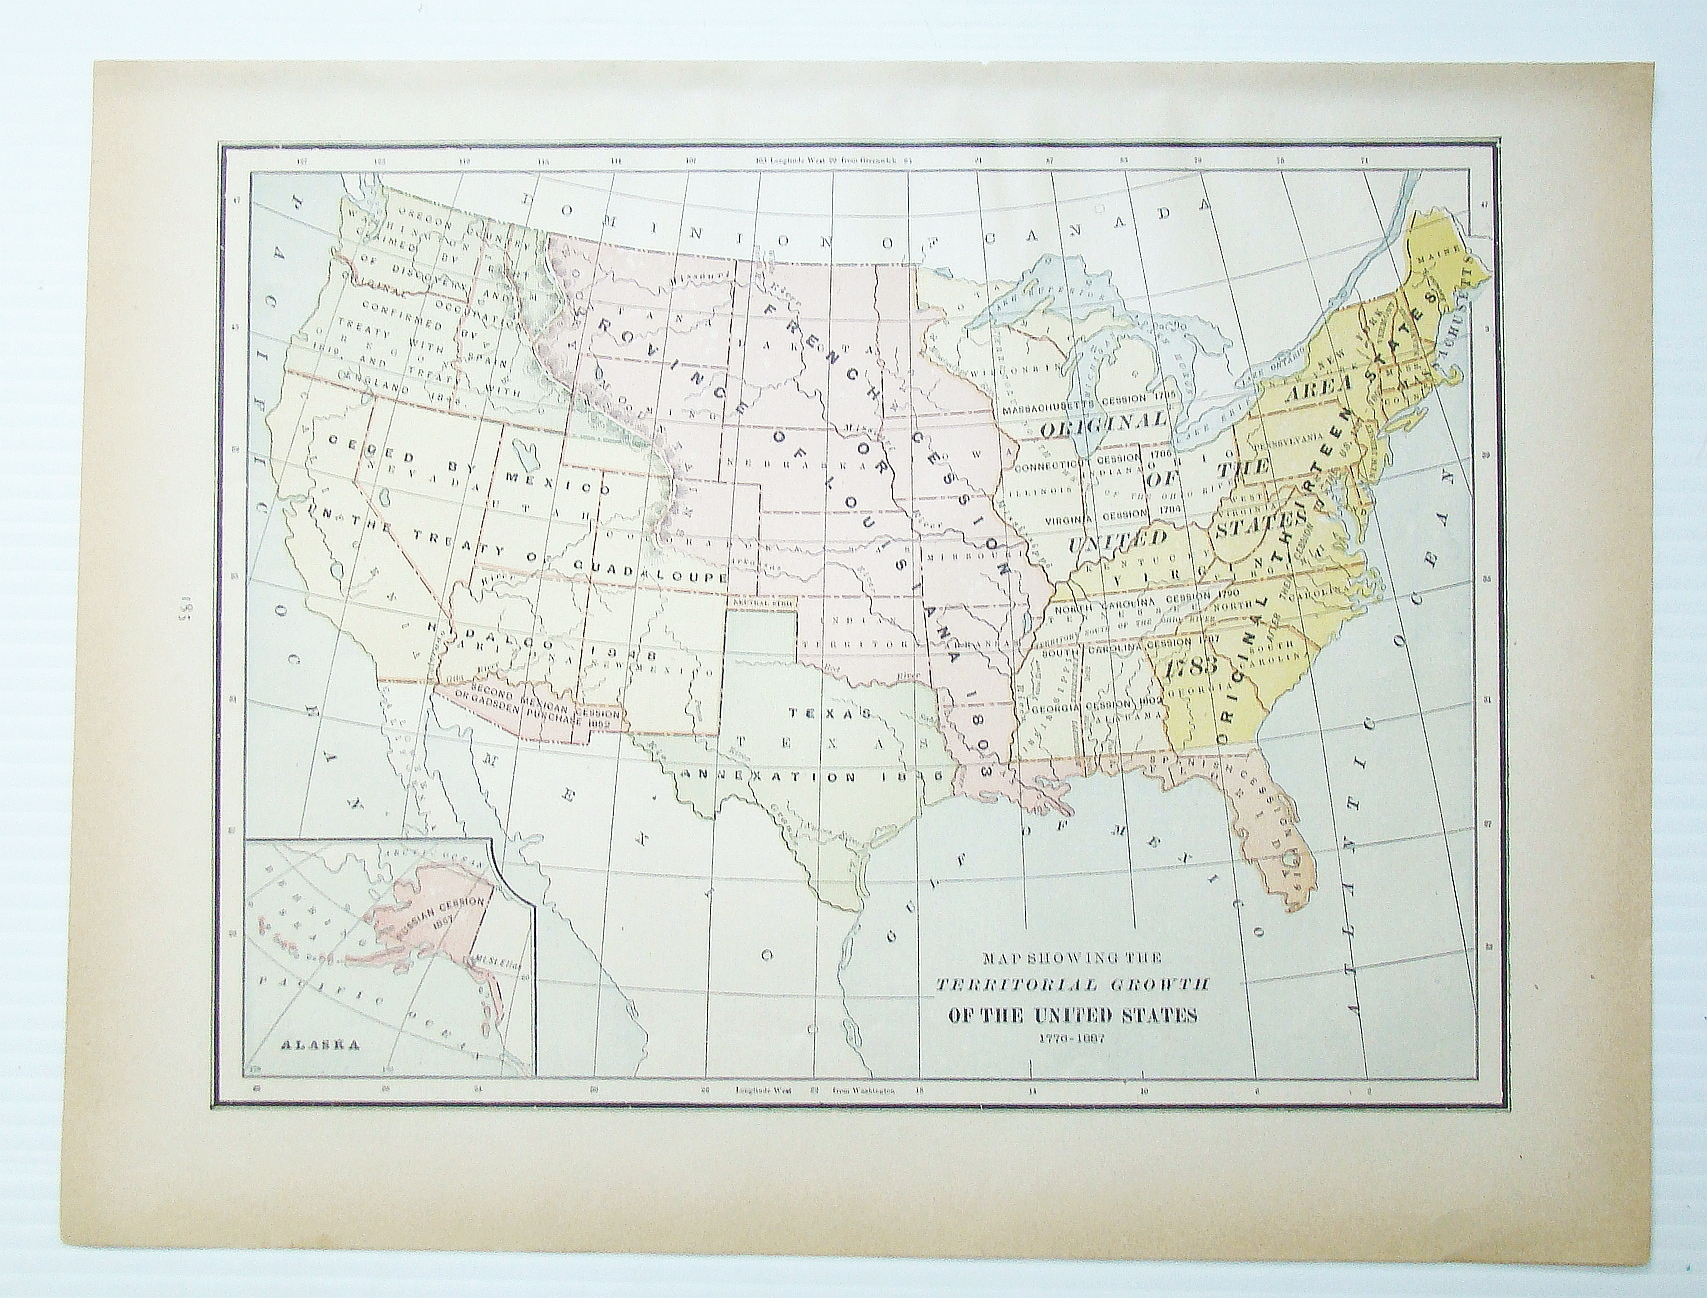 1889 Color Map Showing The Territorial Growth Of The United States